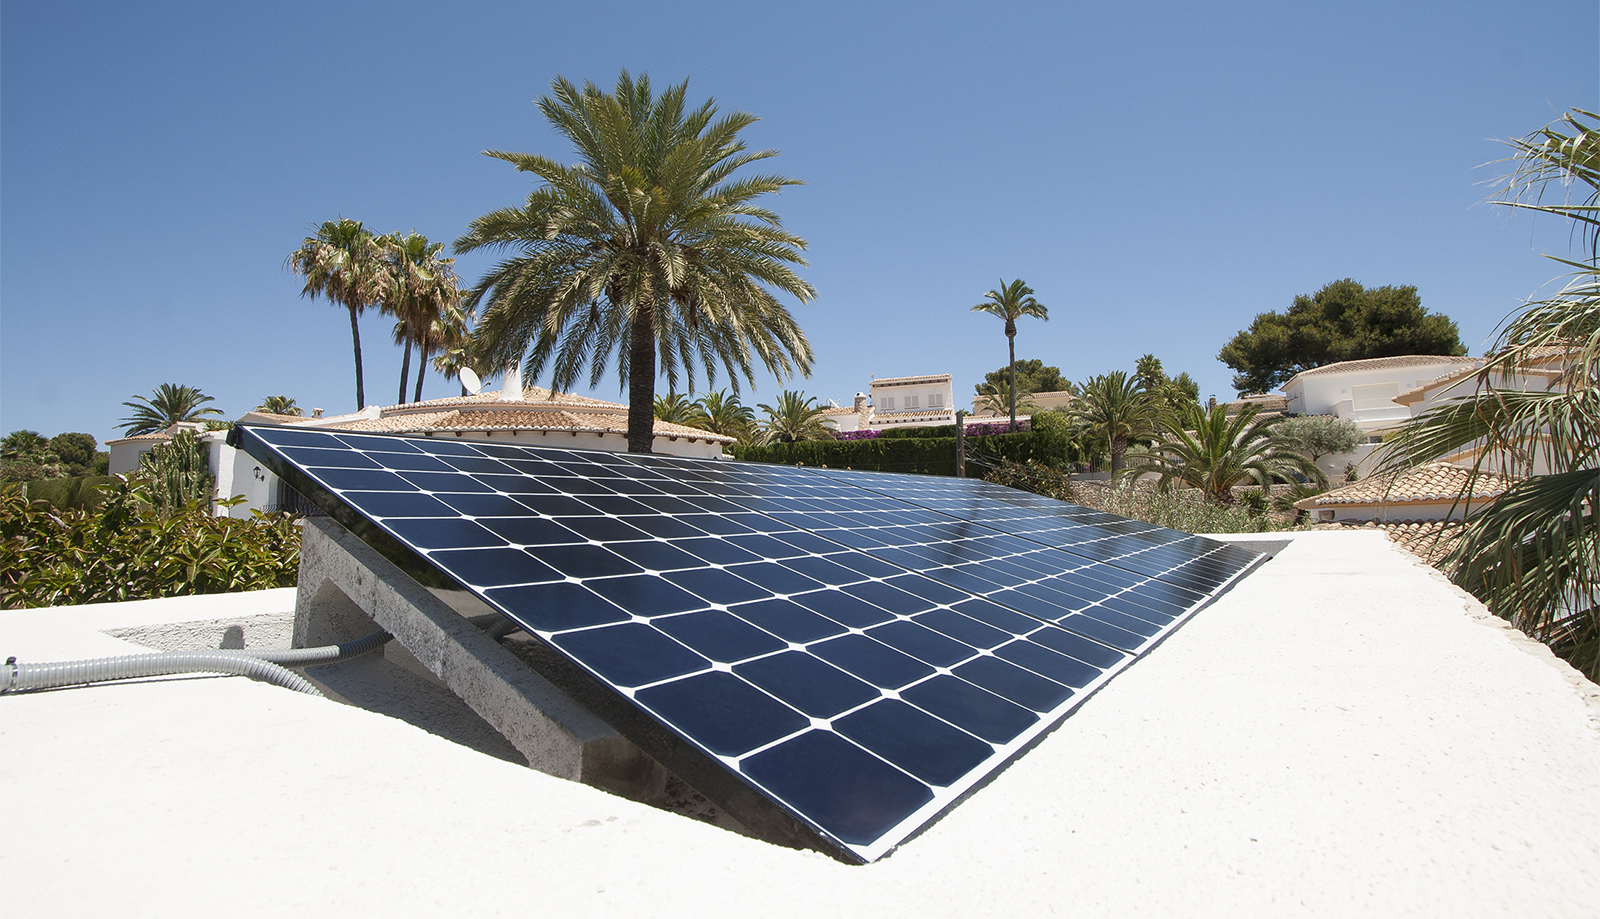 the best solar panels instalation in Moraira